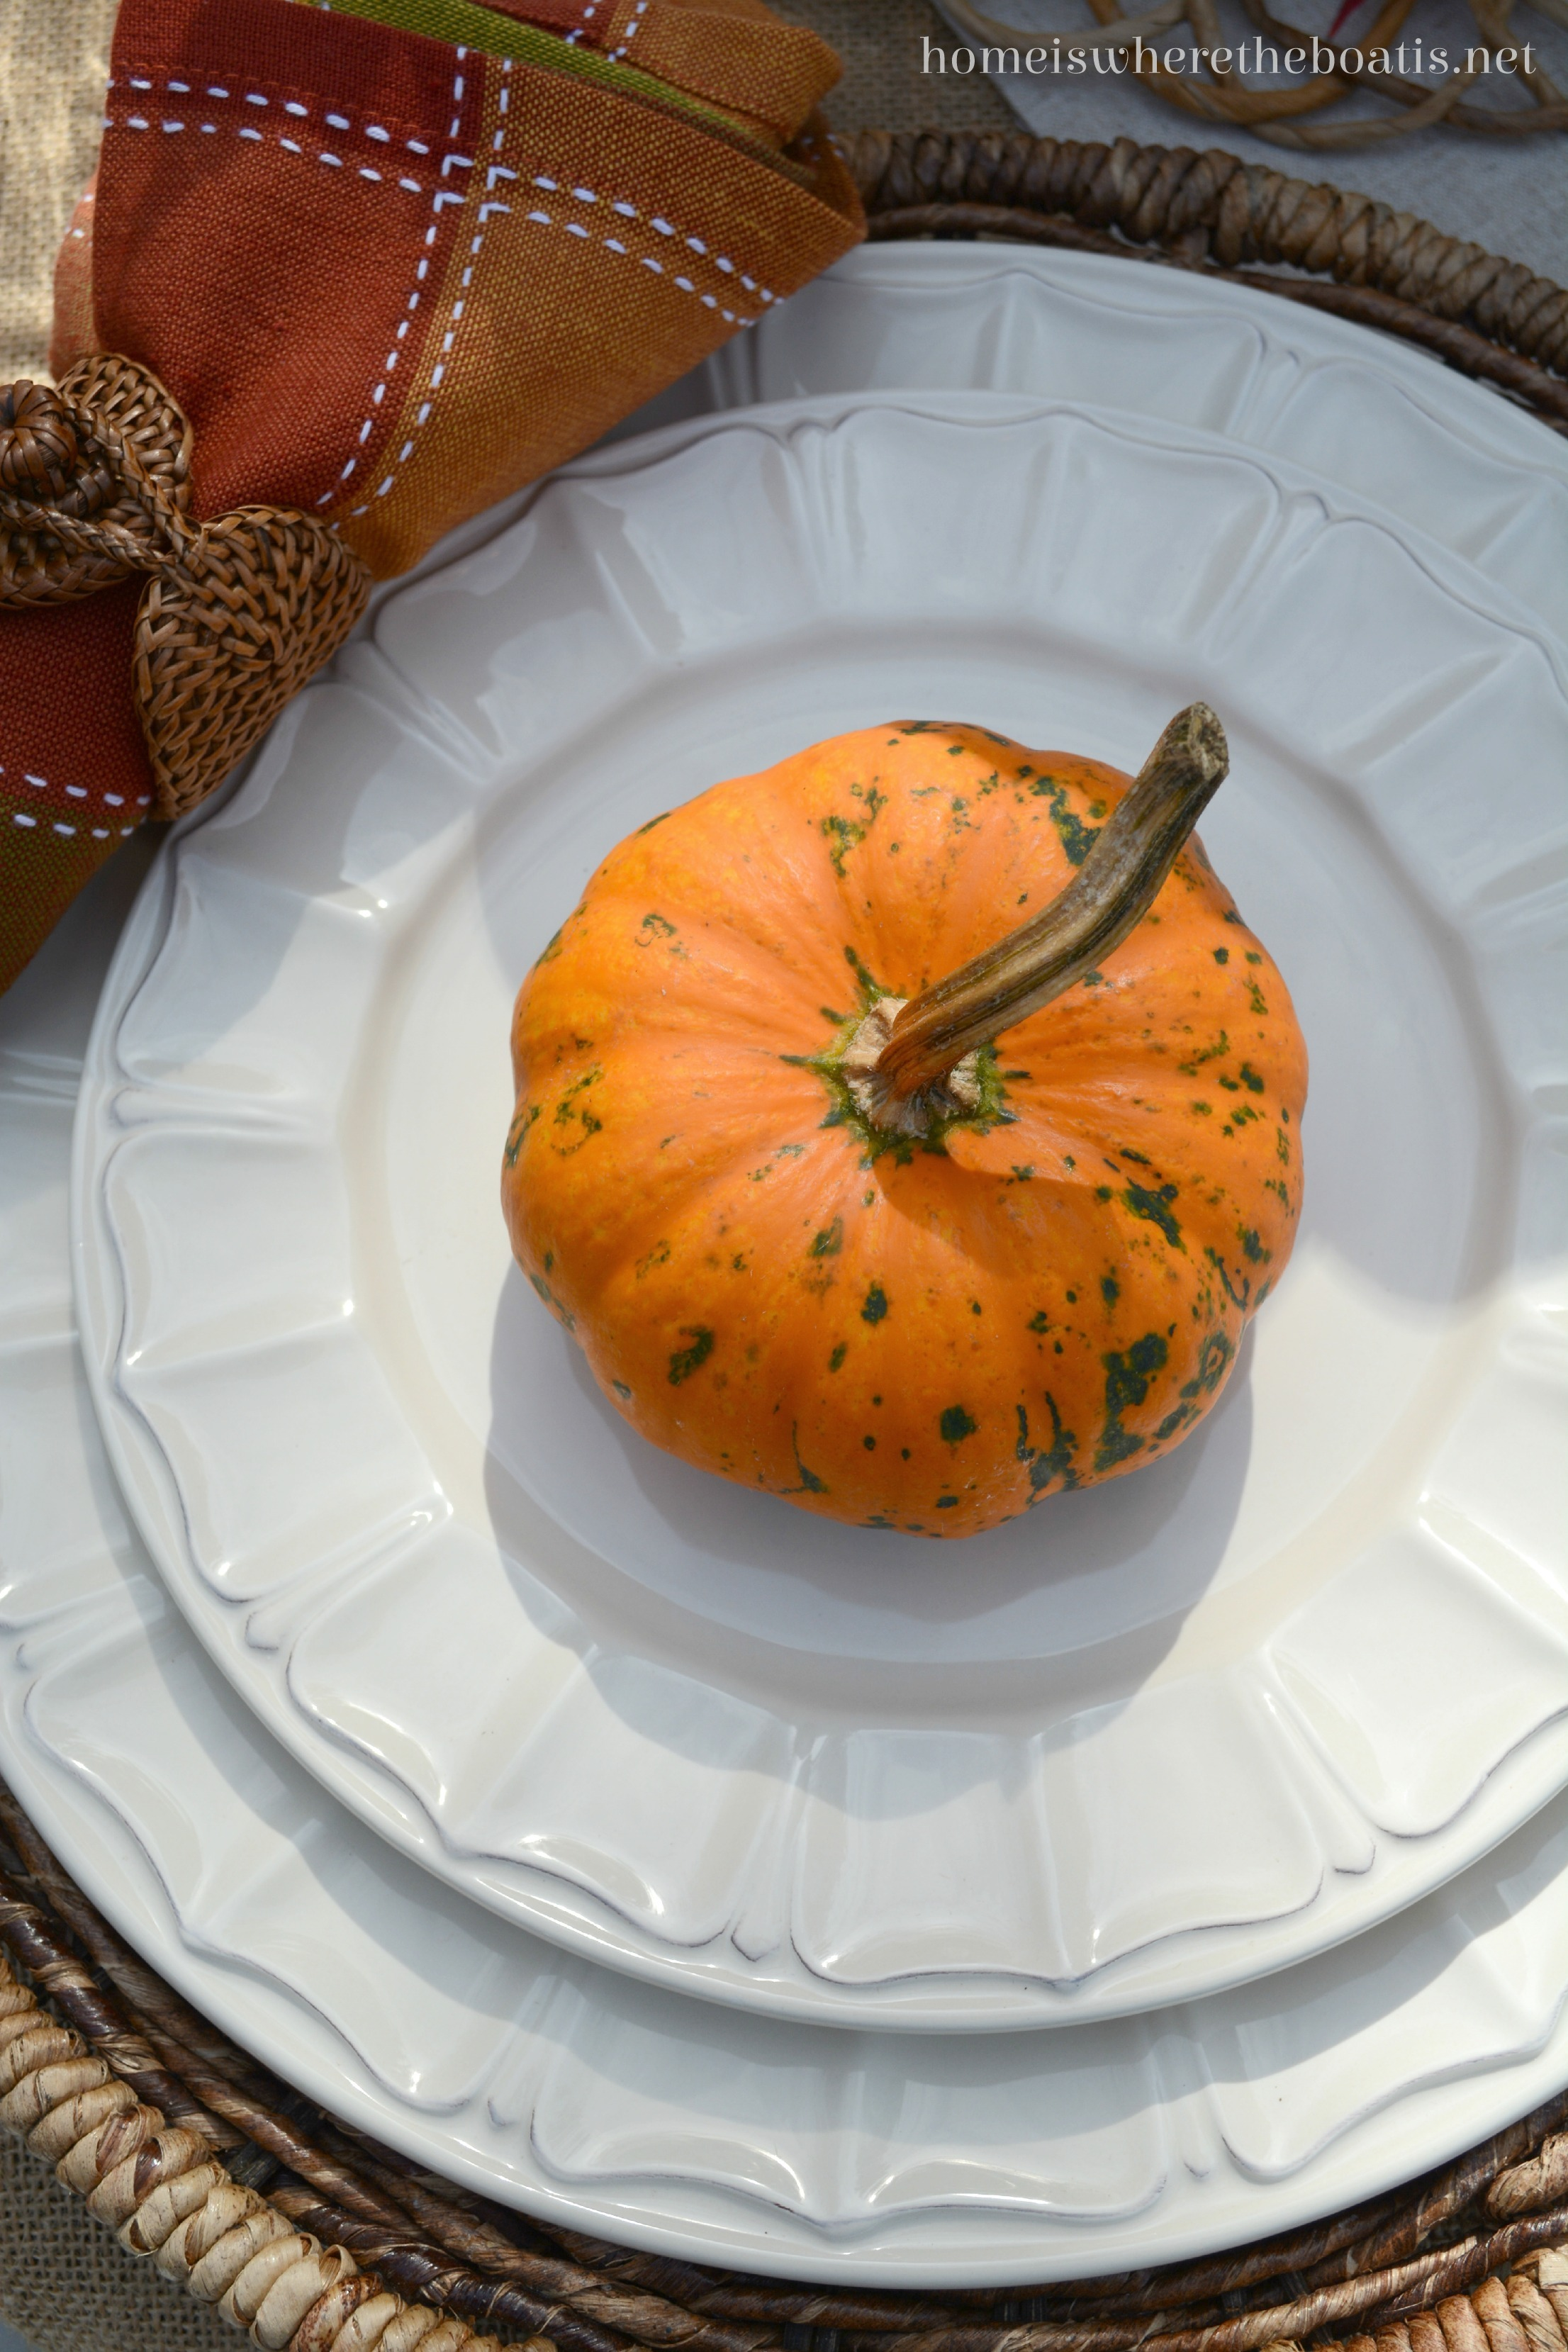 Pfaltzgraff Delaney Dinnerware! & At the Table: Pumpkins and Pfaltzgraff Delaney Dinnerware u2013 Home is ...